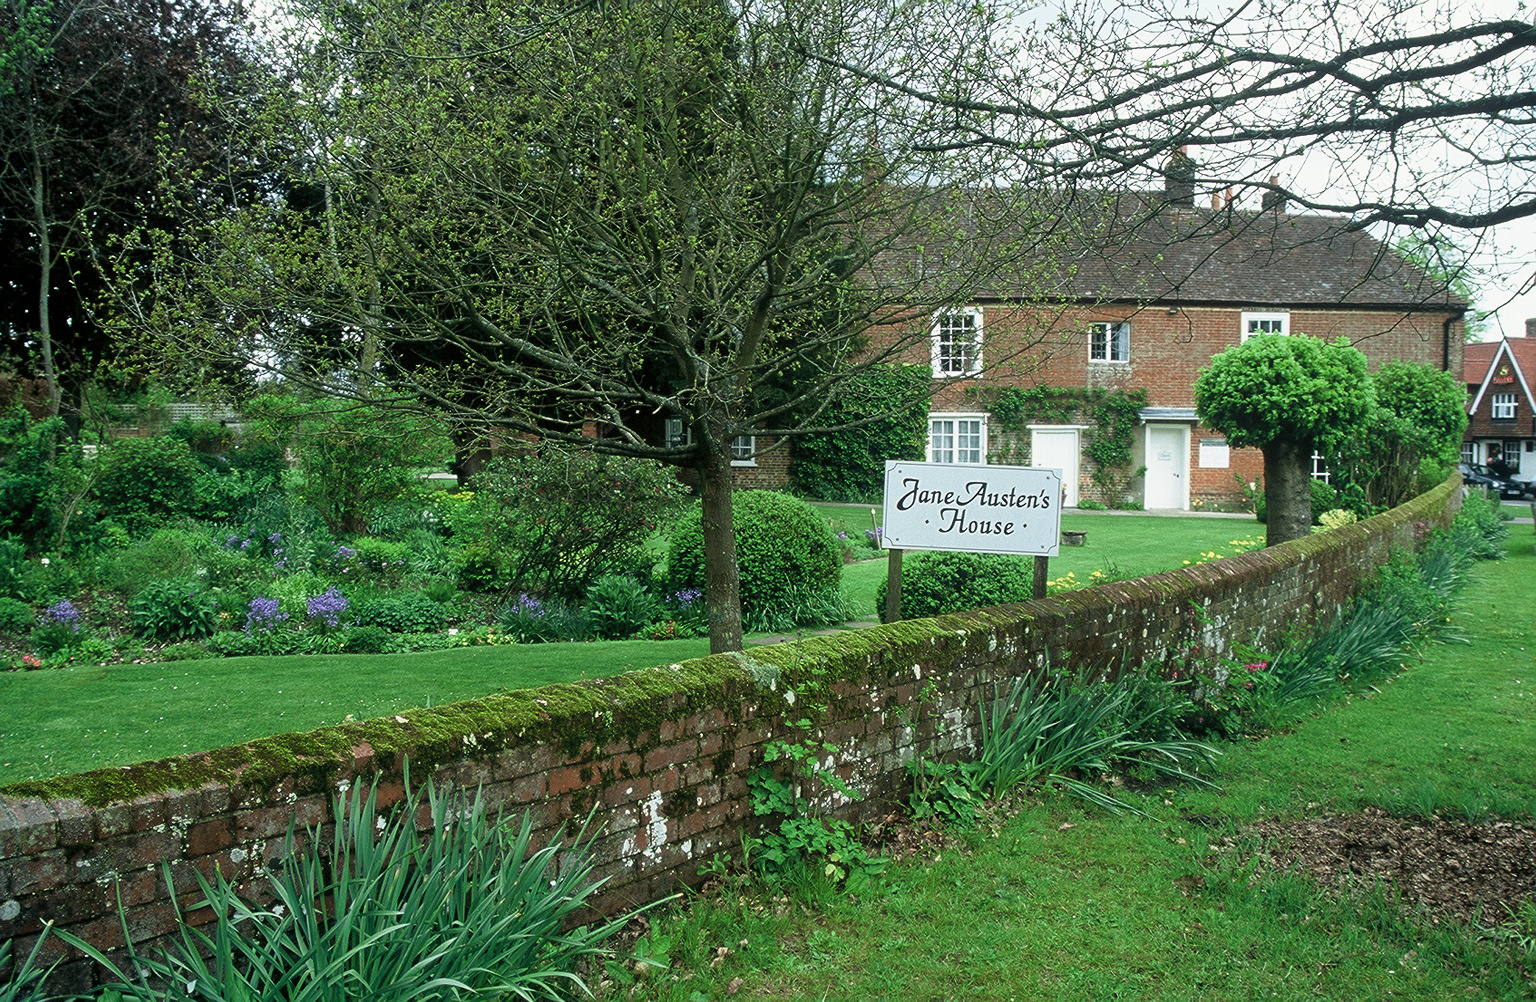 Jane Austen's House Museum (also known as Chawton Cottage)